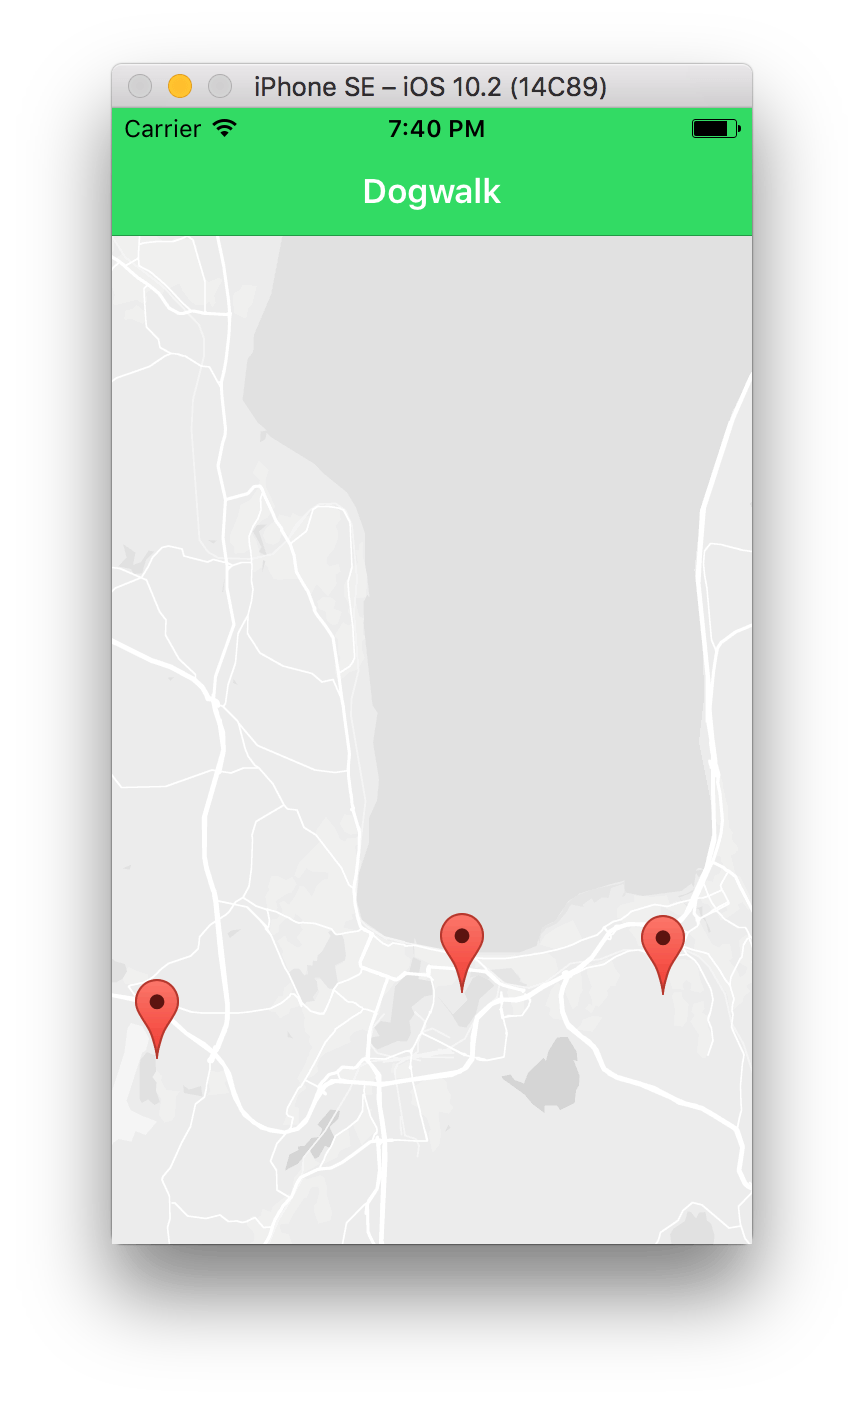 Ionic2 Google maps markers - iOS Simulator displaying dogwalk app with markers